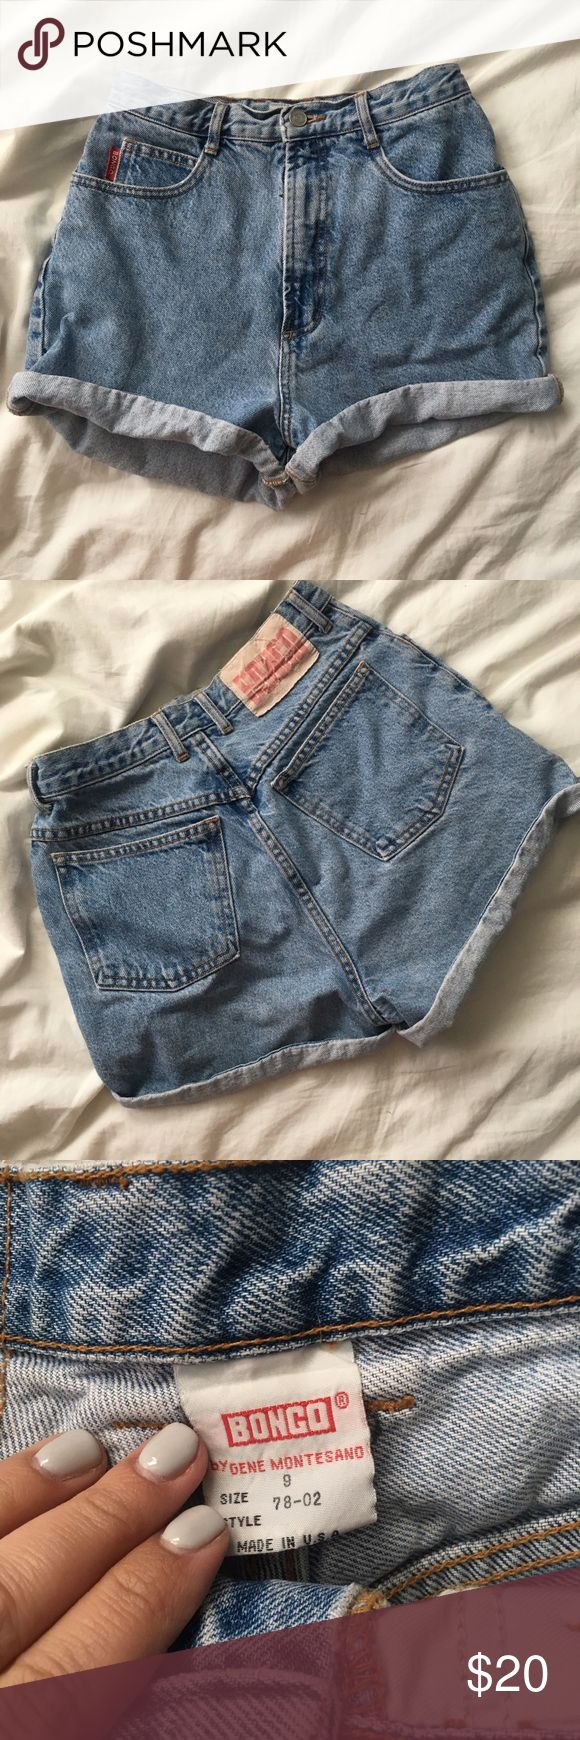 Vintage high waisted jean shorts Vintage Bongo jean shorts that are making a comeback! Lightwash denim. High waisted. Measure 13 across the waist when layed flat. Marked as a size 9, but vintage sizing runs small. Fit a size 26/37 best. Vintage Shorts Jean Shorts